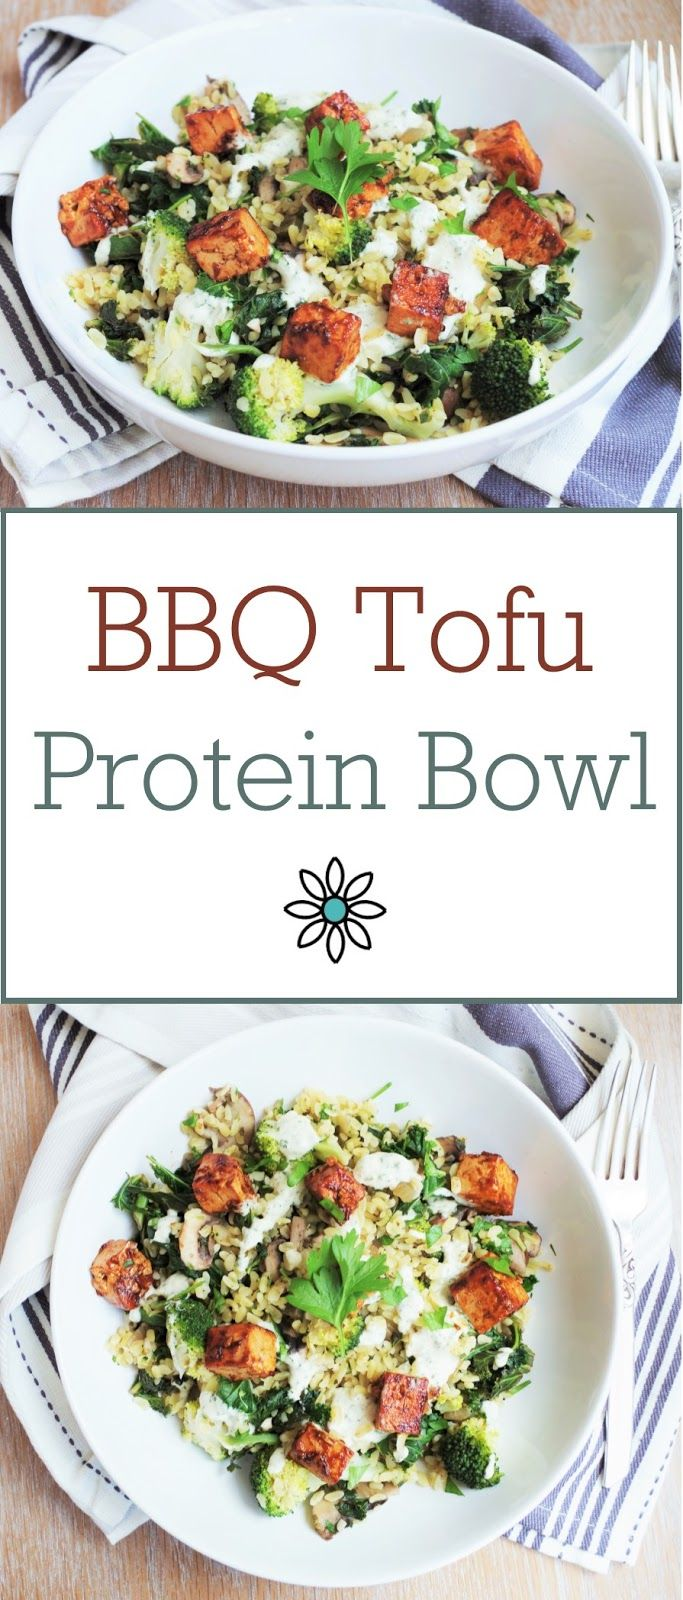 BBQ Tofu Protein Bowl - A bulgur wheat base with garlic, herbs, mushrooms, kale and broccoli, topped with a creamy sunflower seed dressing and sticky BBQ tofu